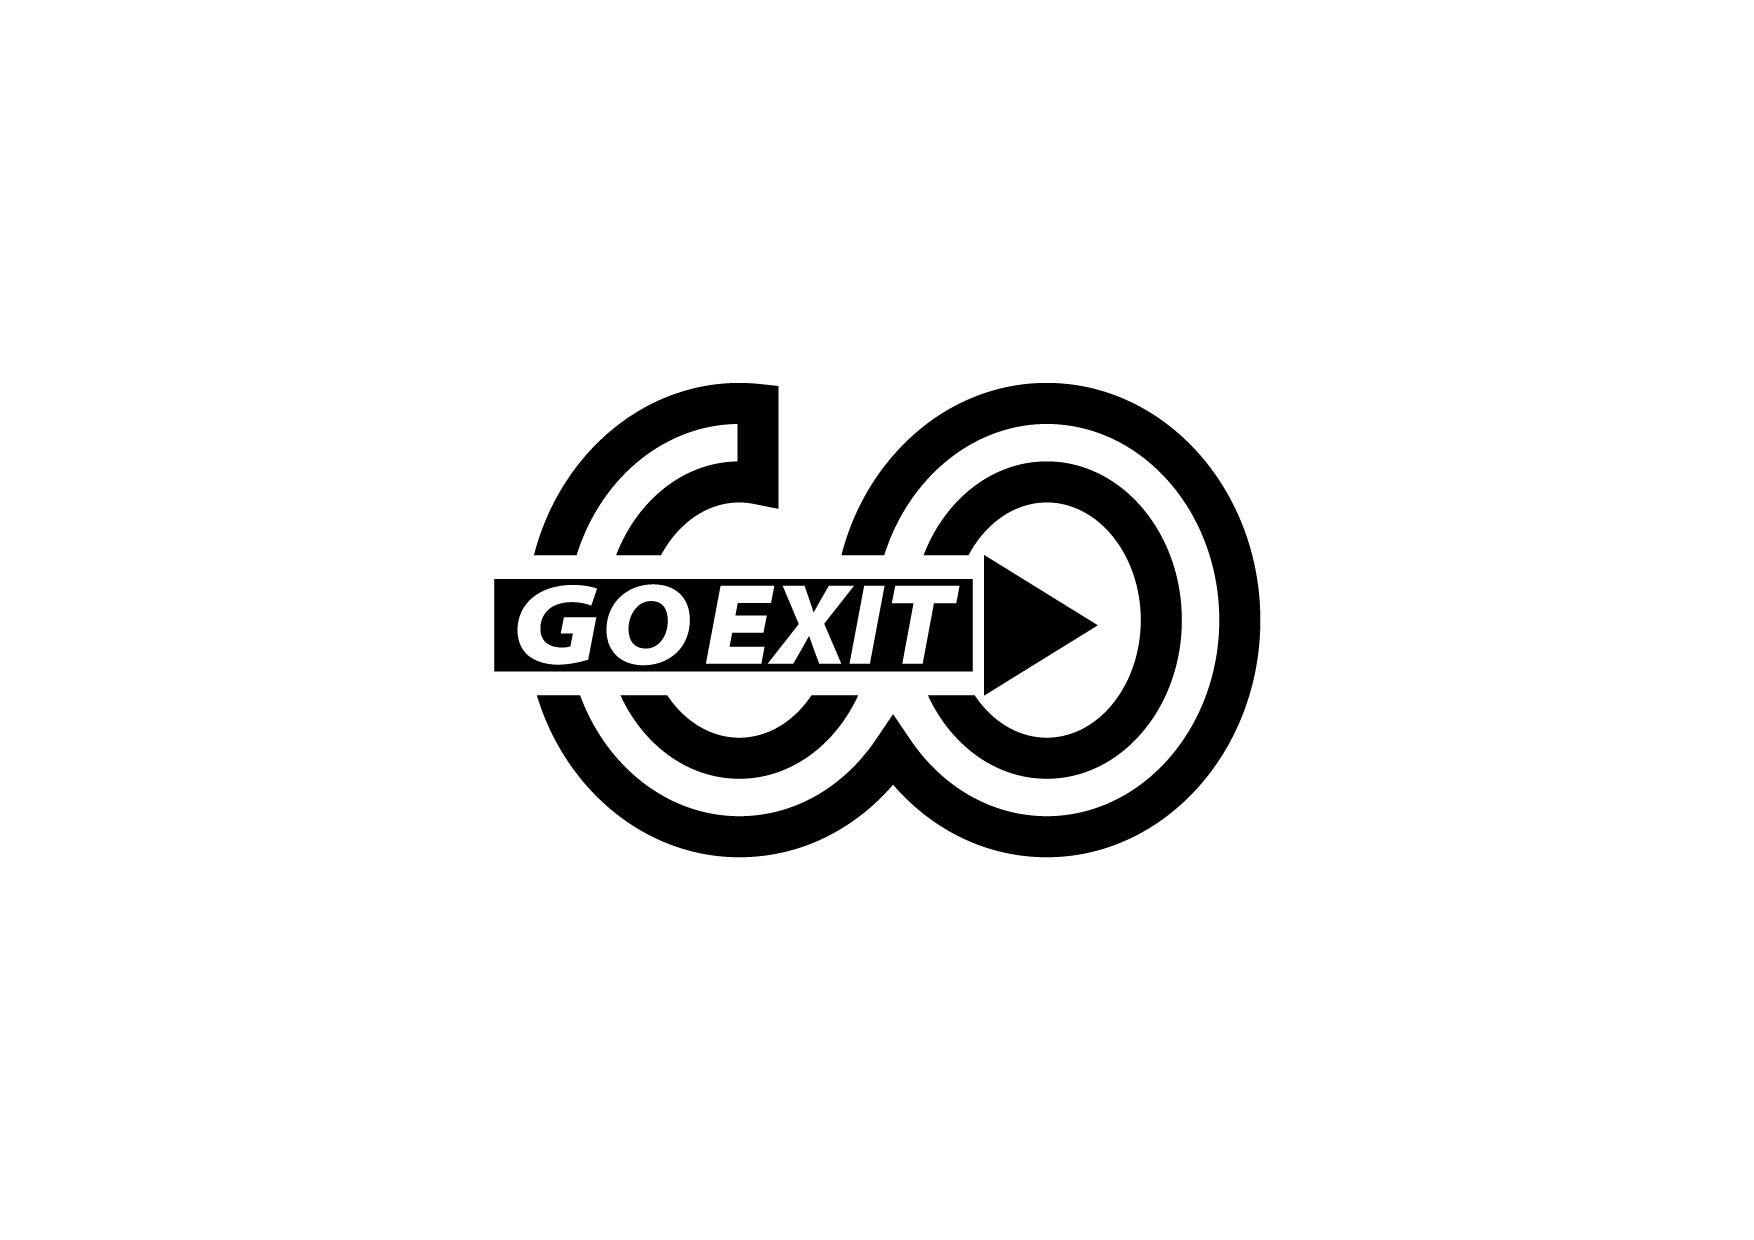 Logo Design by Yash Sindhav - Entry No. 45 in the Logo Design Contest GoExit Logo Design.